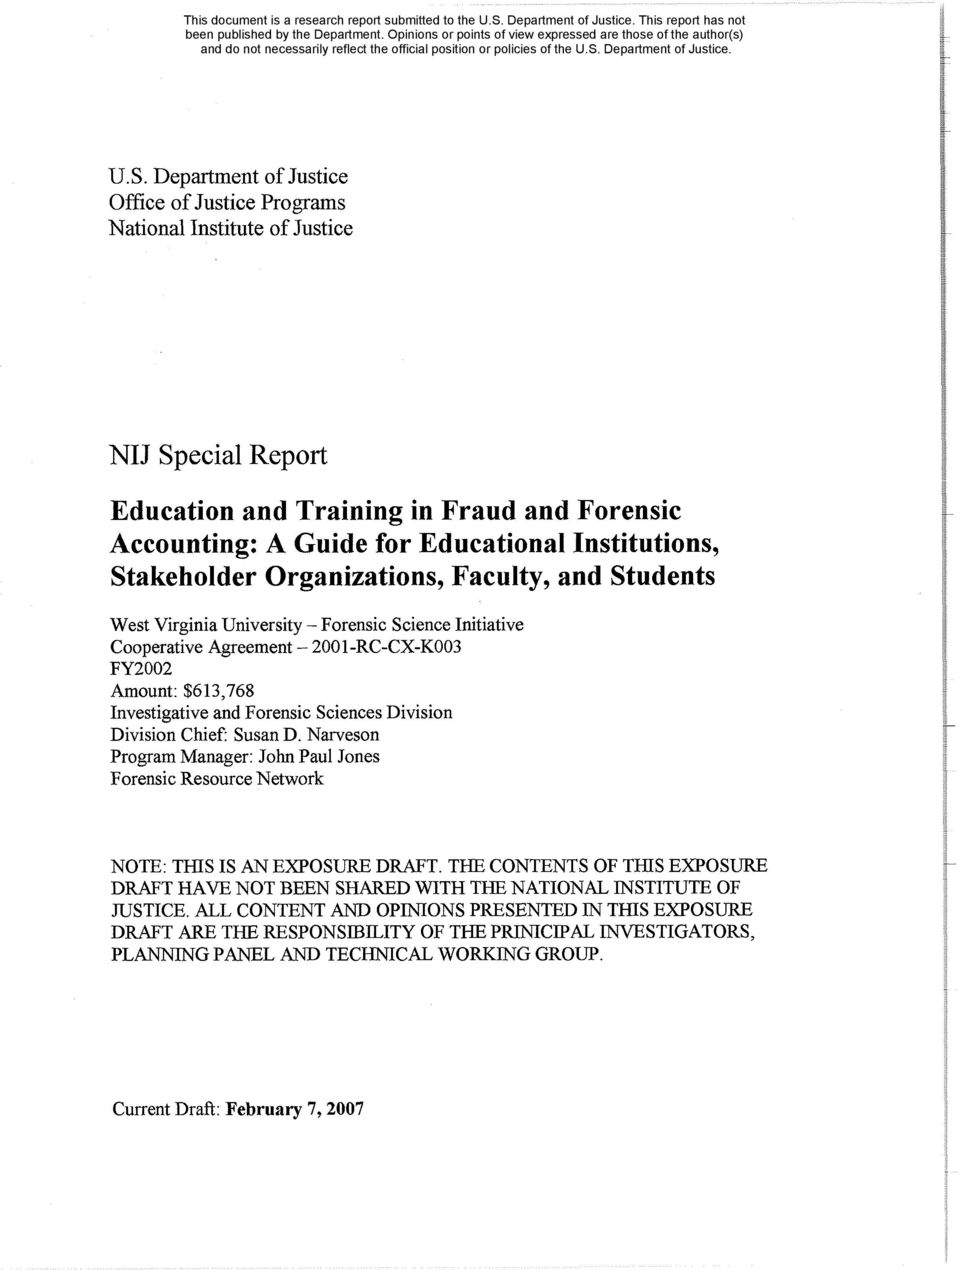 Sciences Division Division Chief: Susan D. Narveson Program Manager: John Paul Jones Forensic Resource Network NOTE: THIS IS AN EXPOSURE DRAFT.